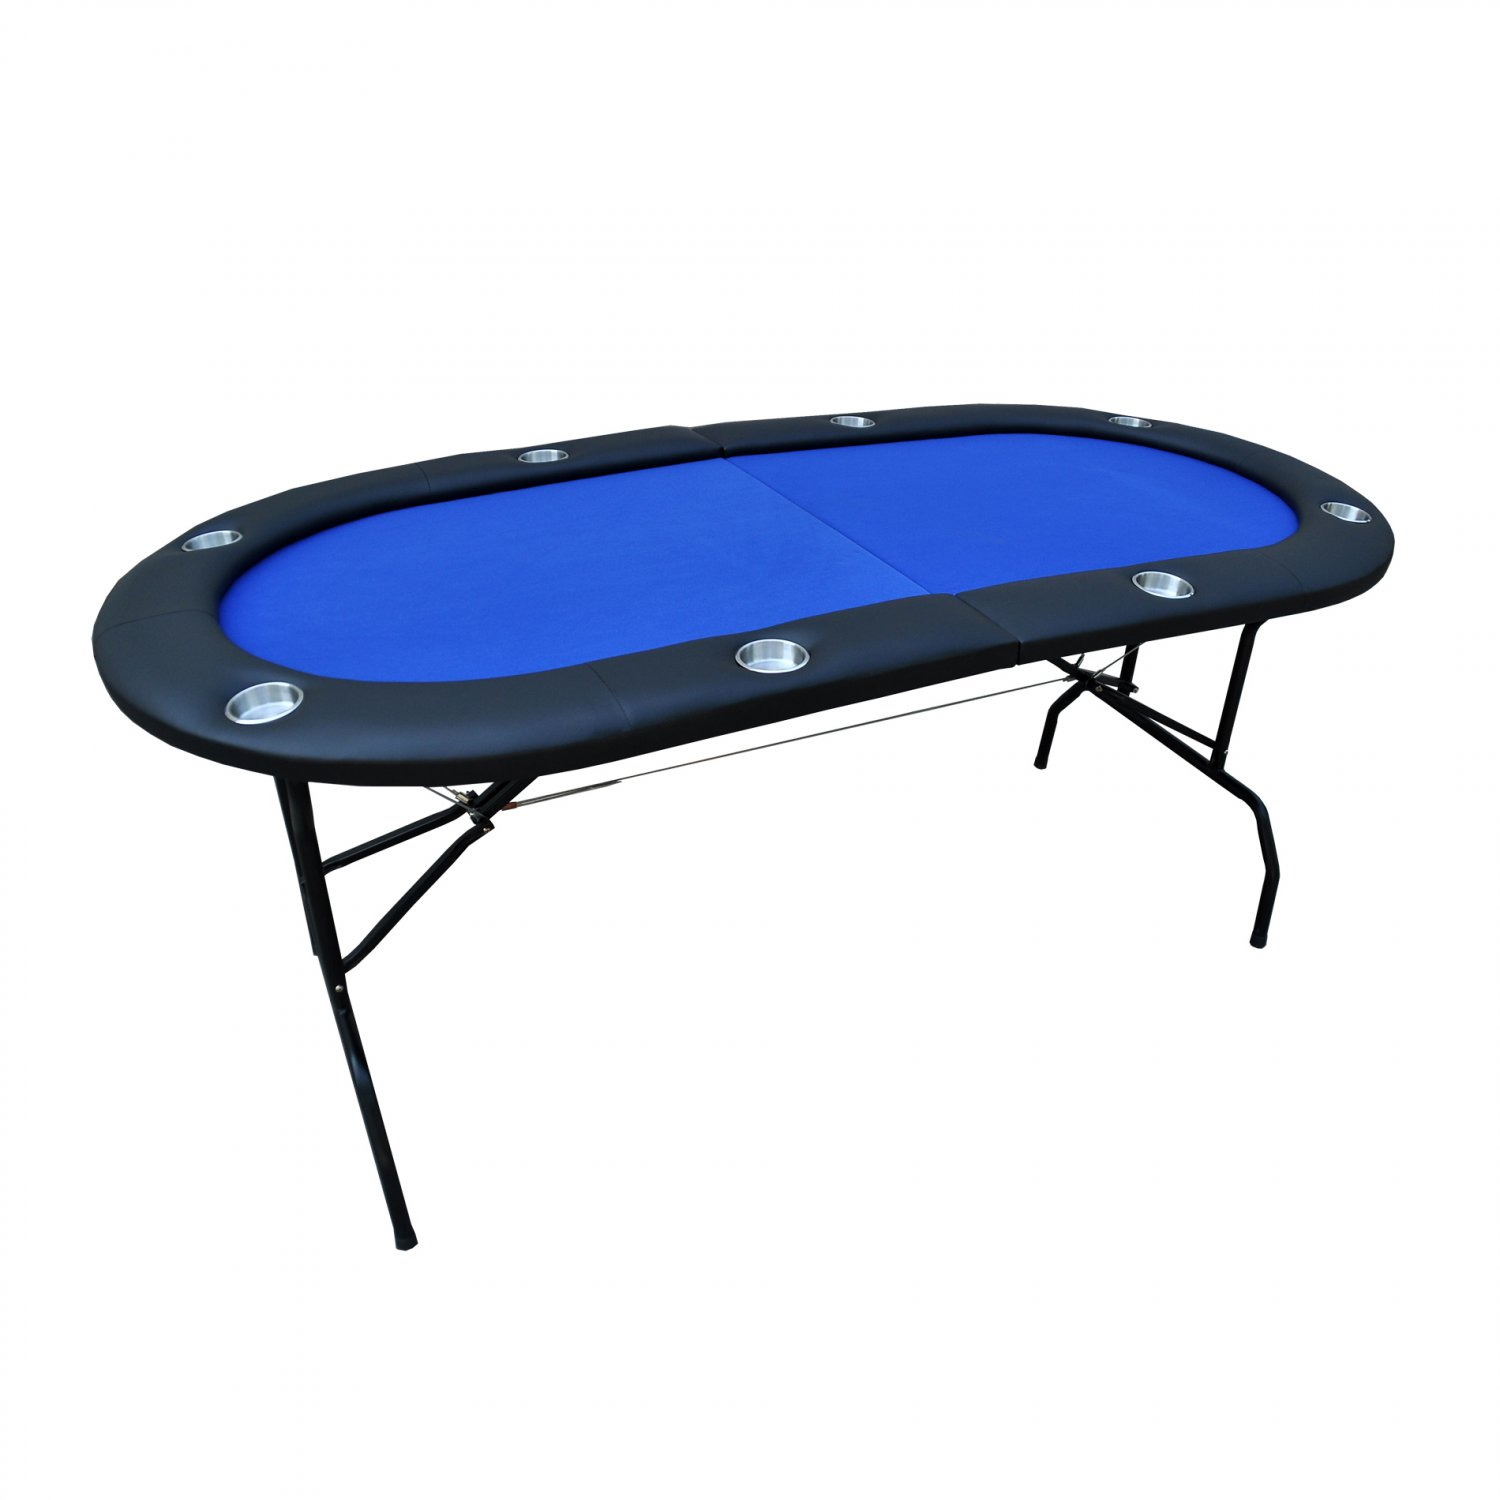 "73"" 8 Player Foldable Poker Table Casino Texas Holdem Blue Ver.2 (Ship US Country Only)#16361-BL#"